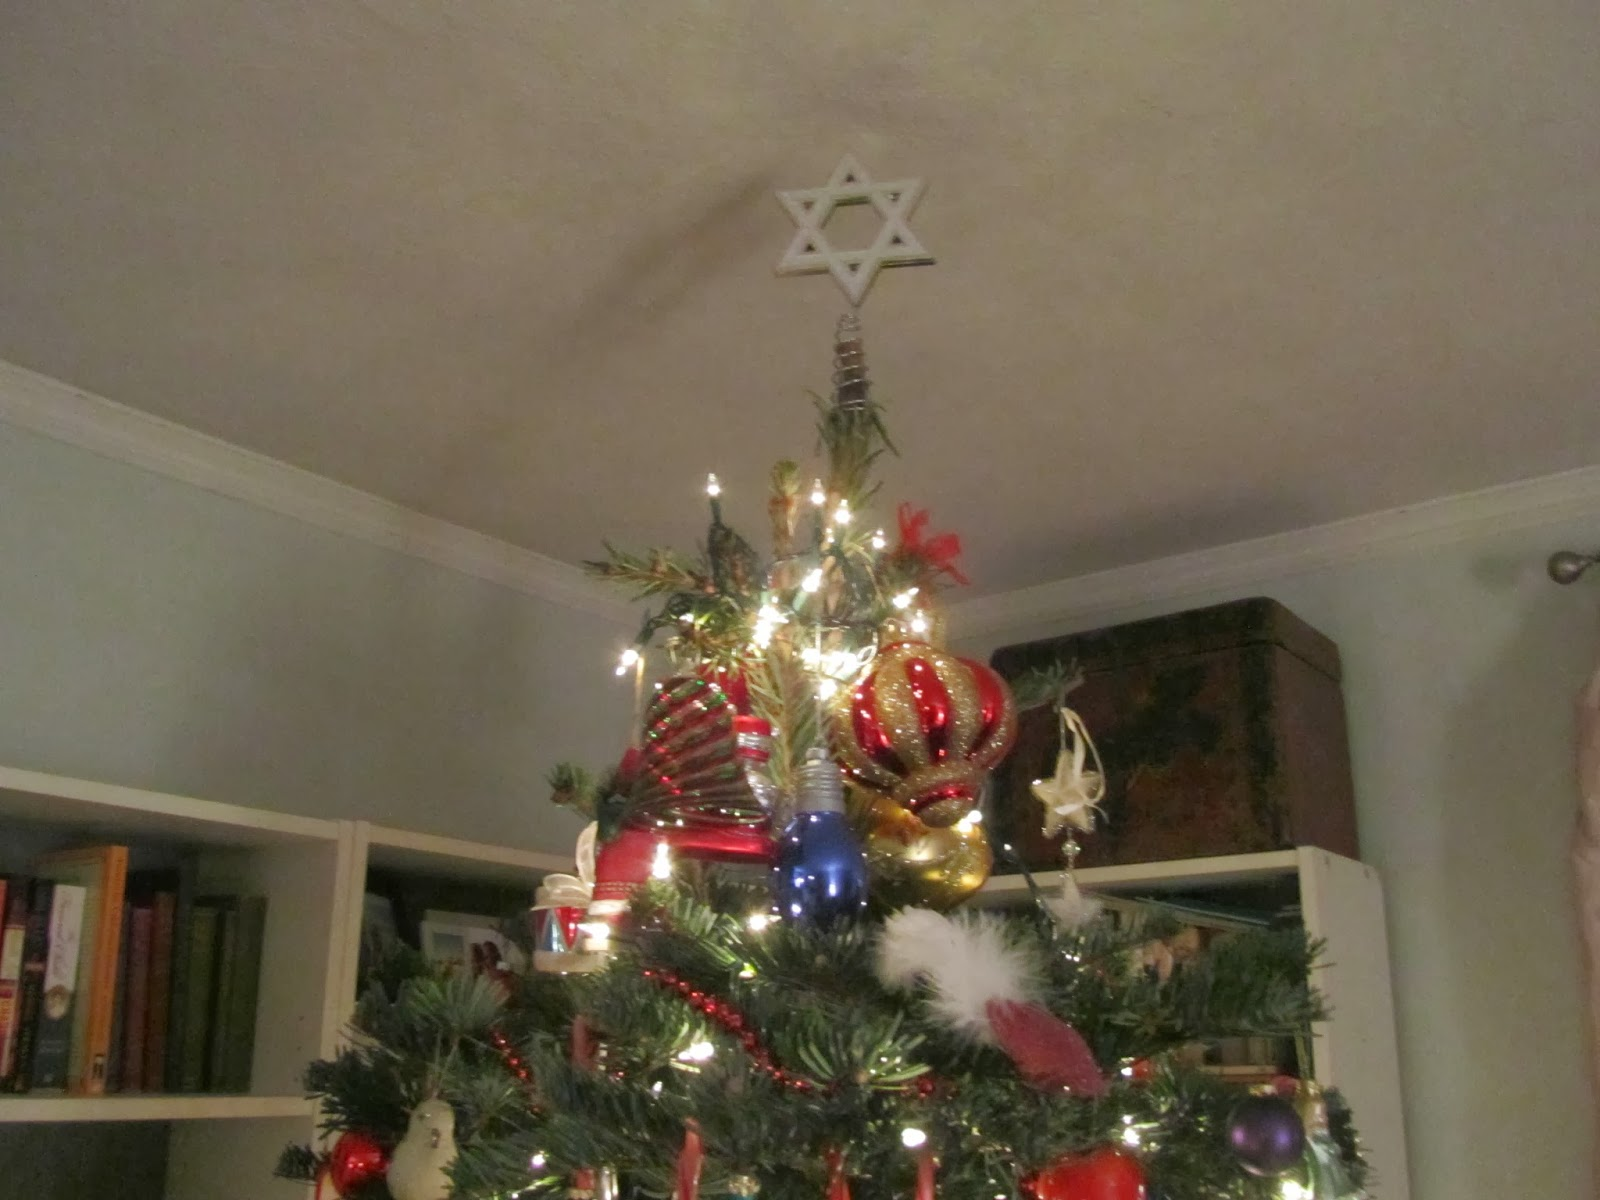 Misadventures in Motherhood: We Need a Little (Jewish) Christmas